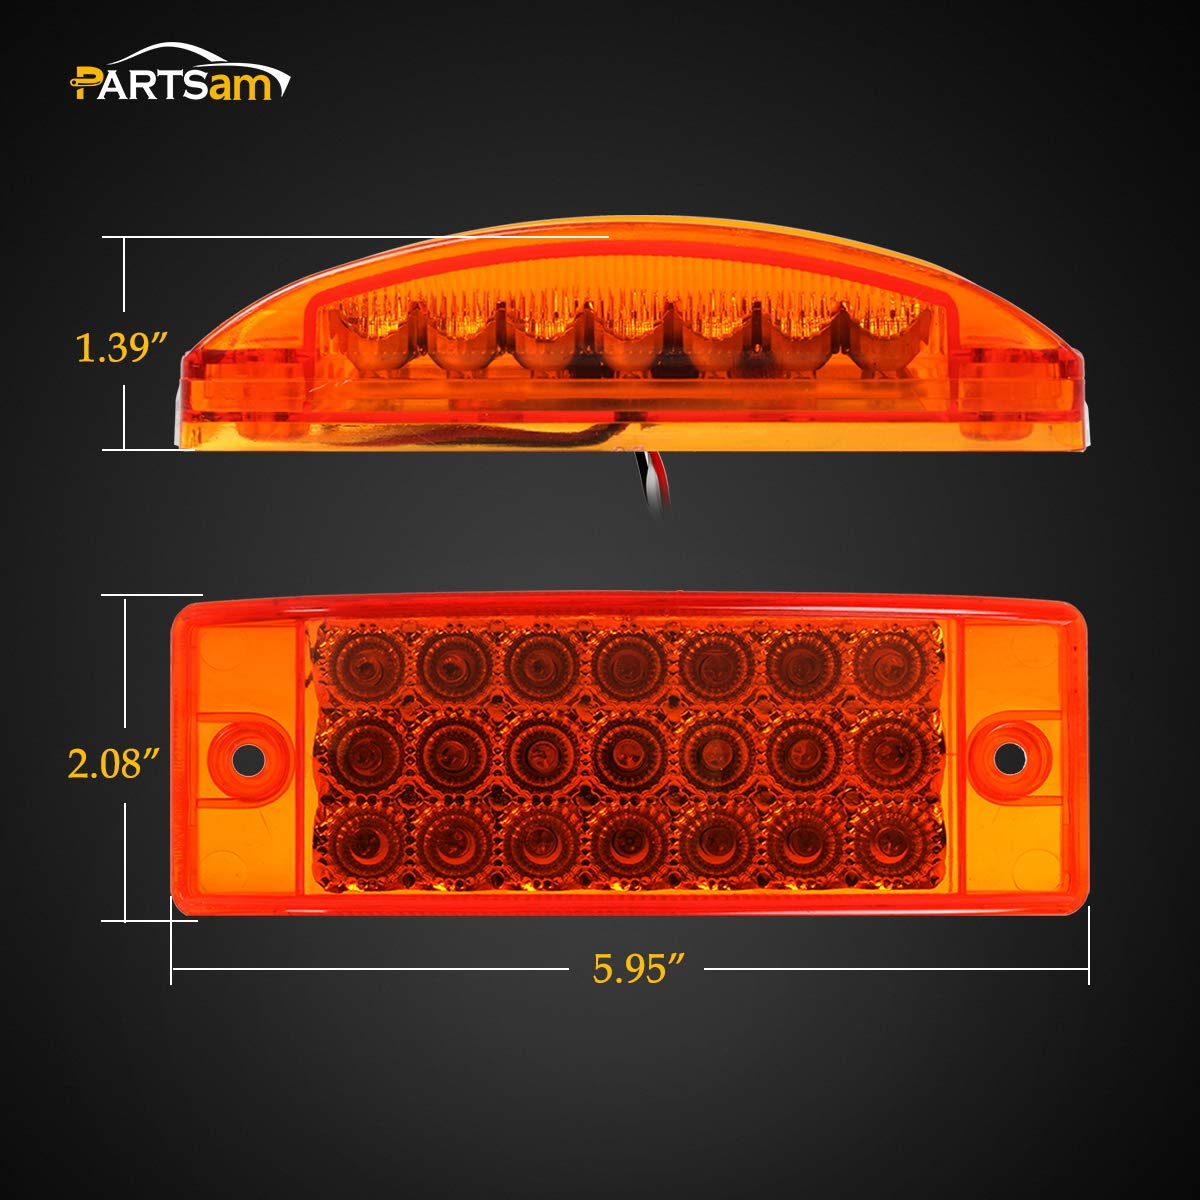 Partsam 2pcs 6 Amber Led Rectangle Tail Stop Marker 1965 Chevelle Wiring Diagram For Lights Light Trailer Truck Rv 3 Wires 21led 6x2 Rectangular Clearance